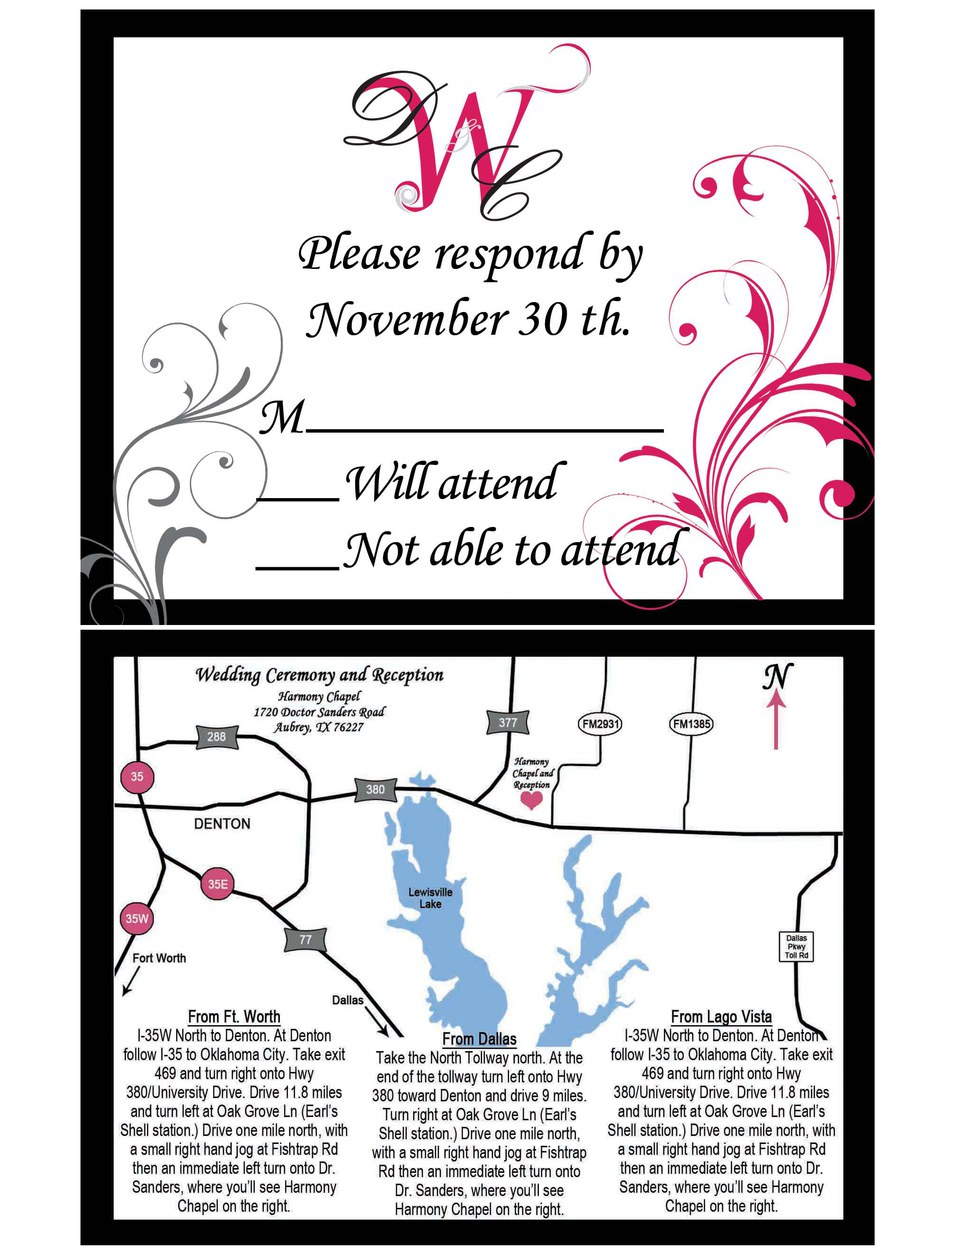 RSVP Card and Map